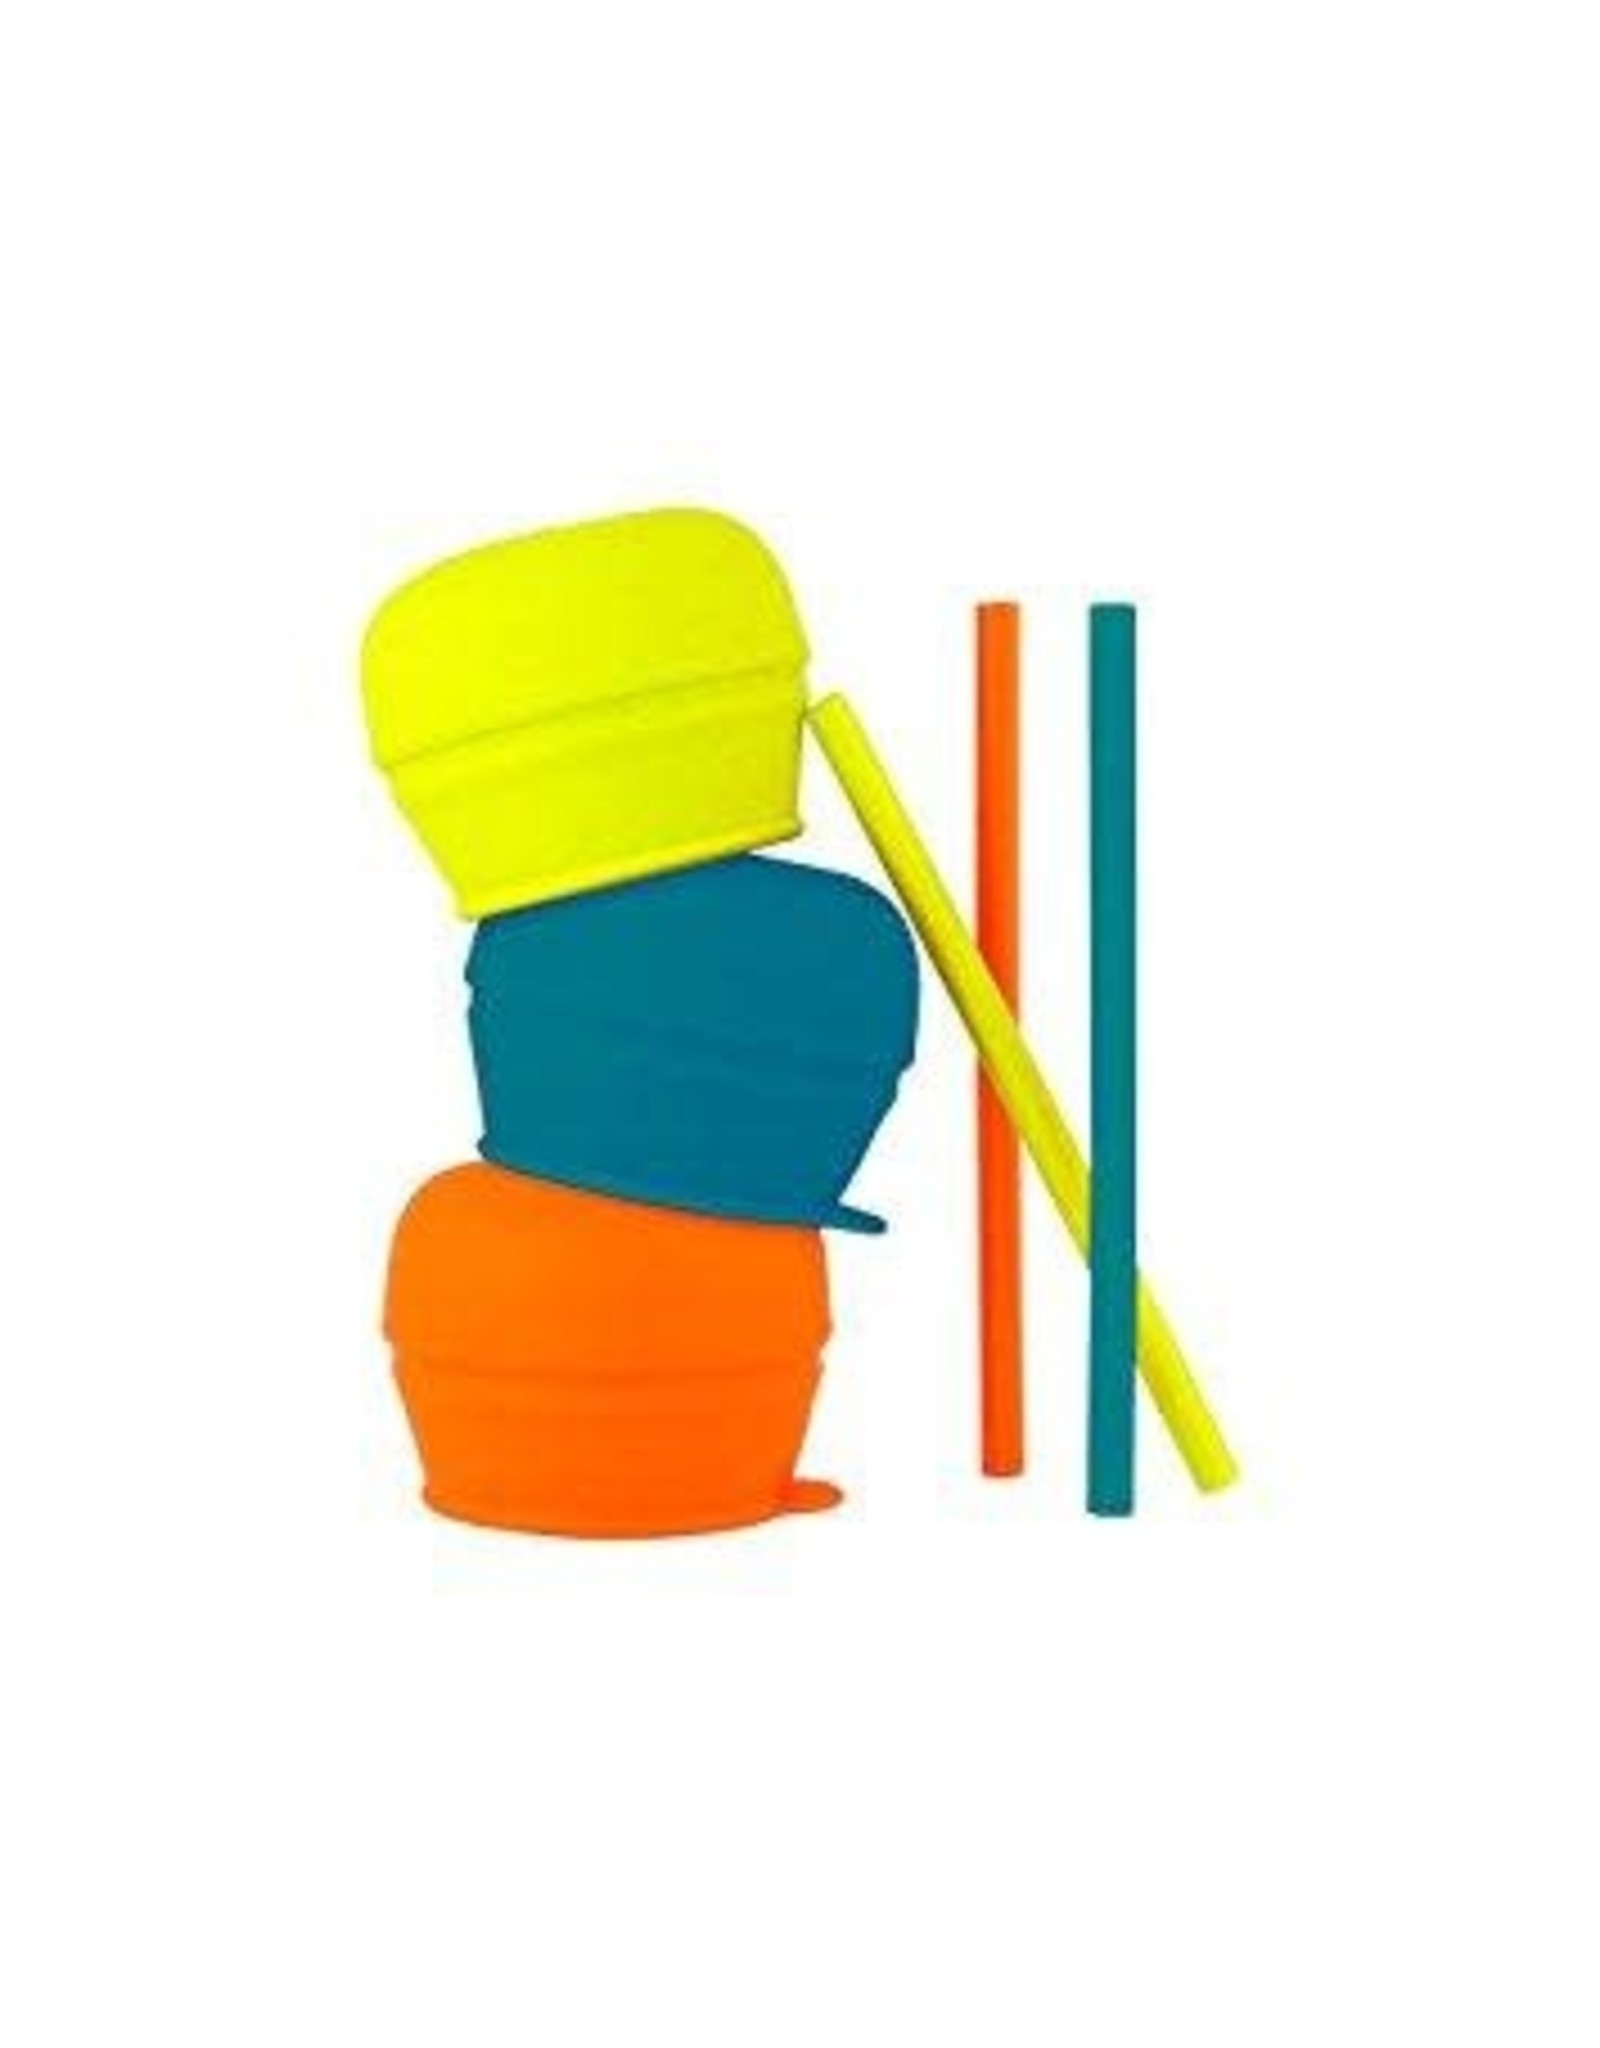 Boon Snug Straw 3 Pack with Lids, Blue/Orange/Green